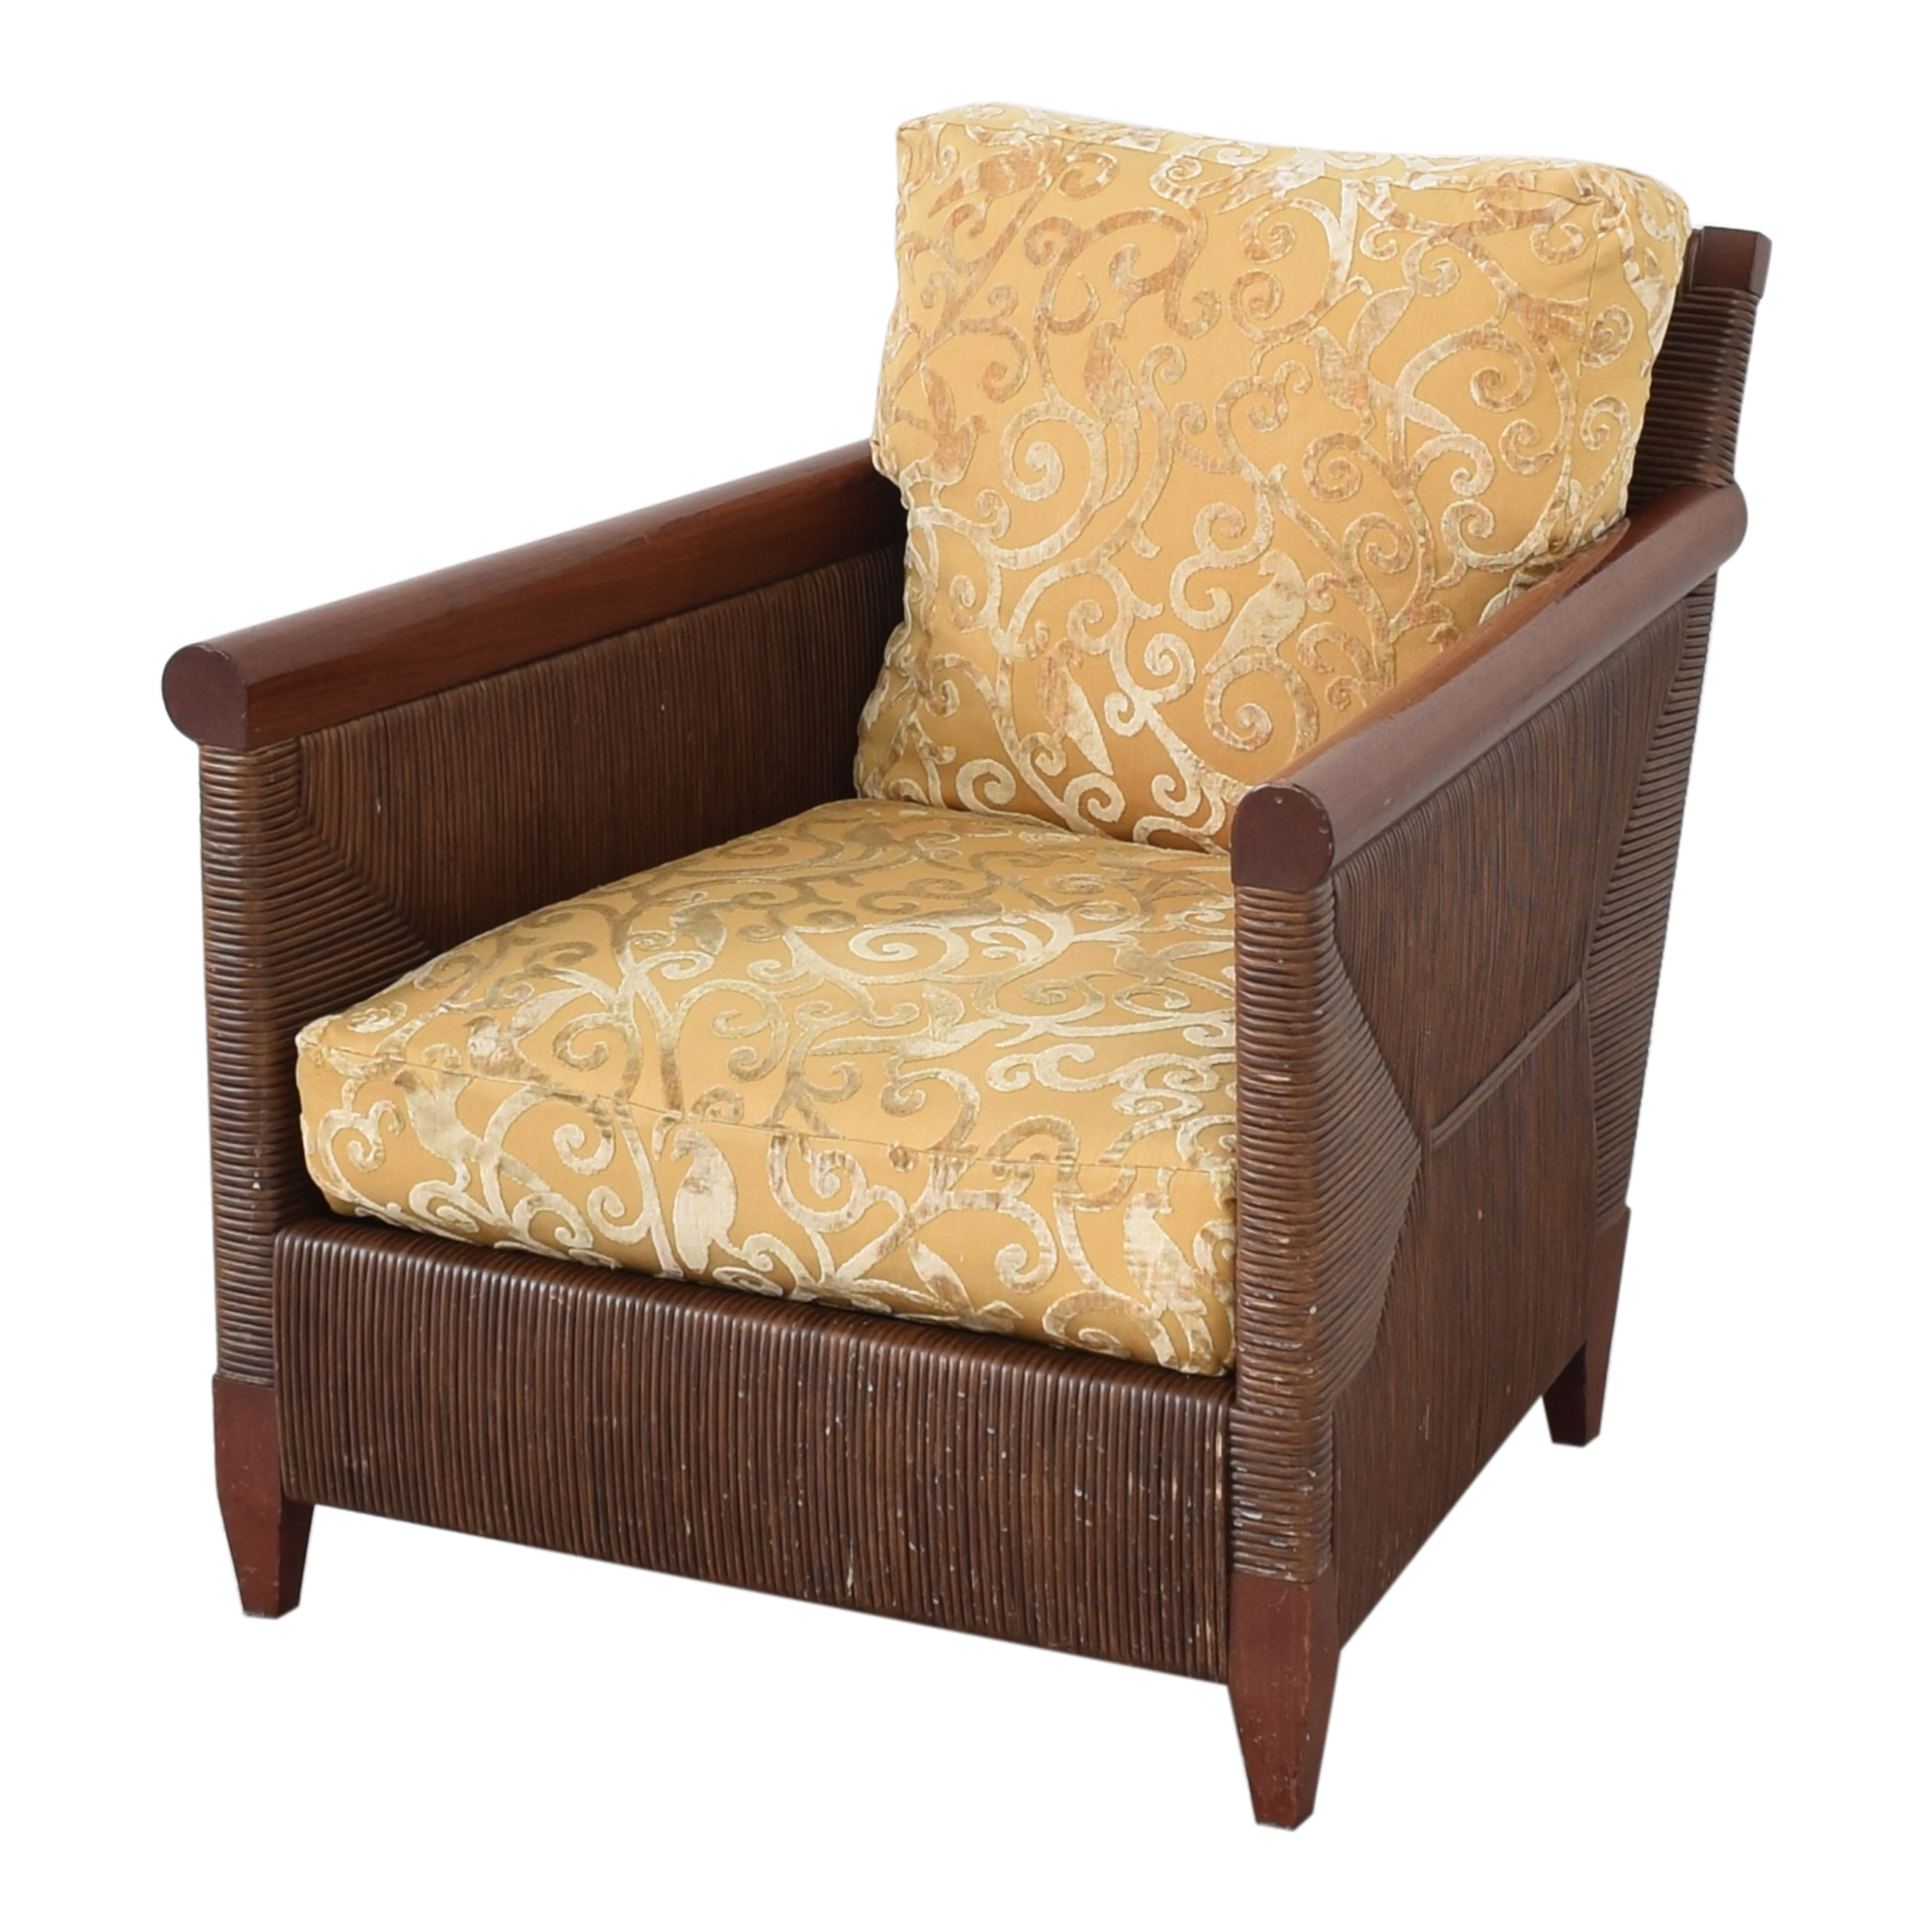 Donghia Donghia by John Hutton Mahogany and Wicker Lounger ma